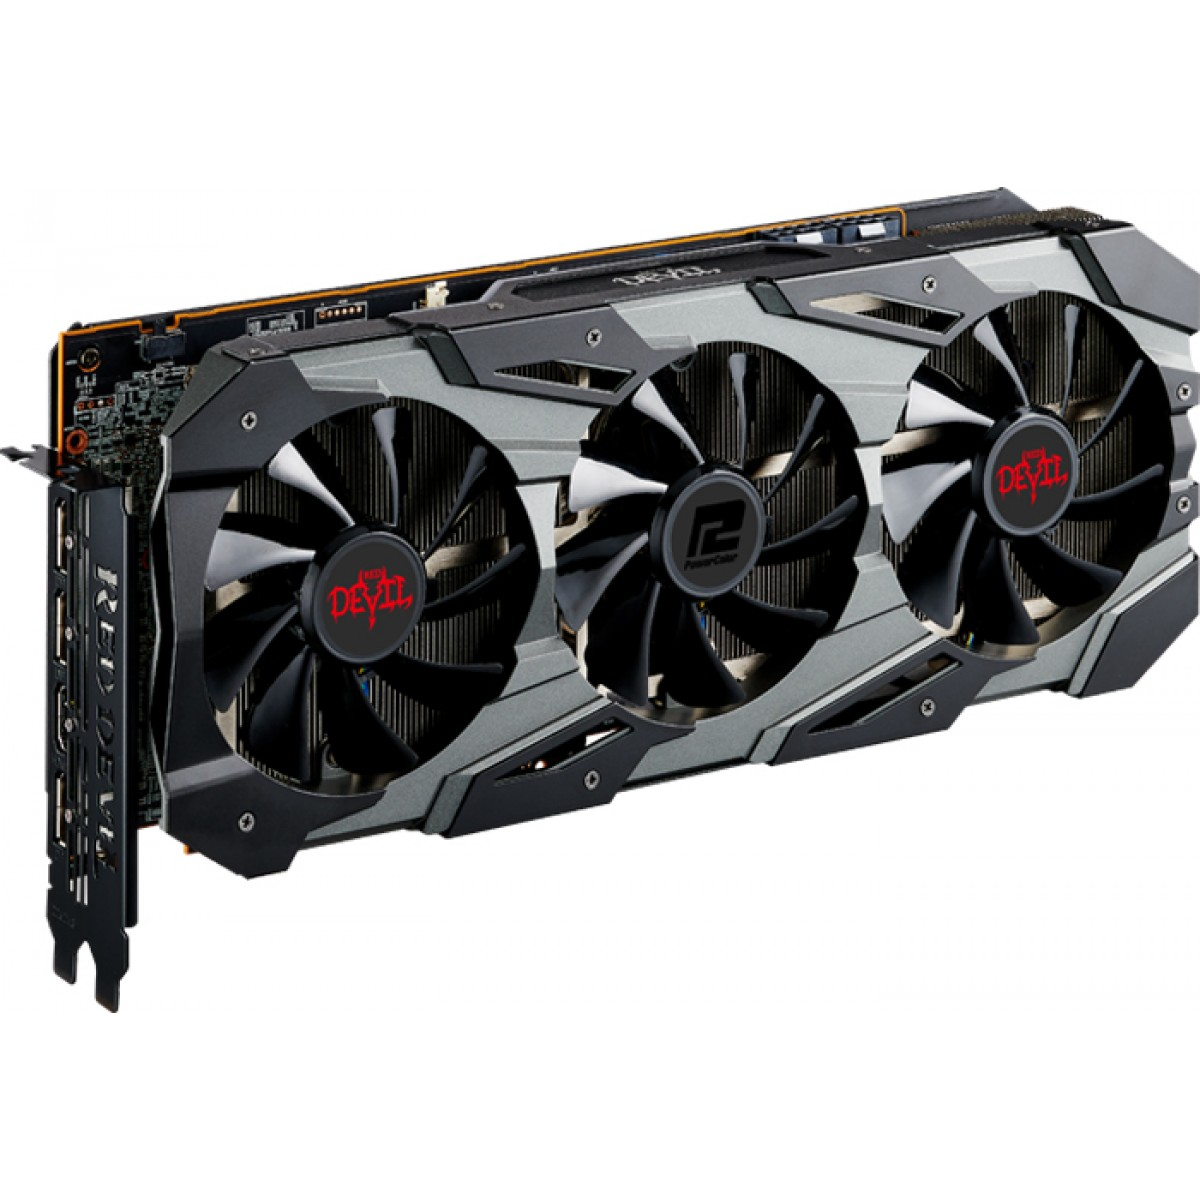 Placa de Vídeo PowerColor Radeon RX 5700 XT Red Devil, 8GB GDDR6, 256Bit, AXRX 5700 XT 8GBD6-3DHE/OC